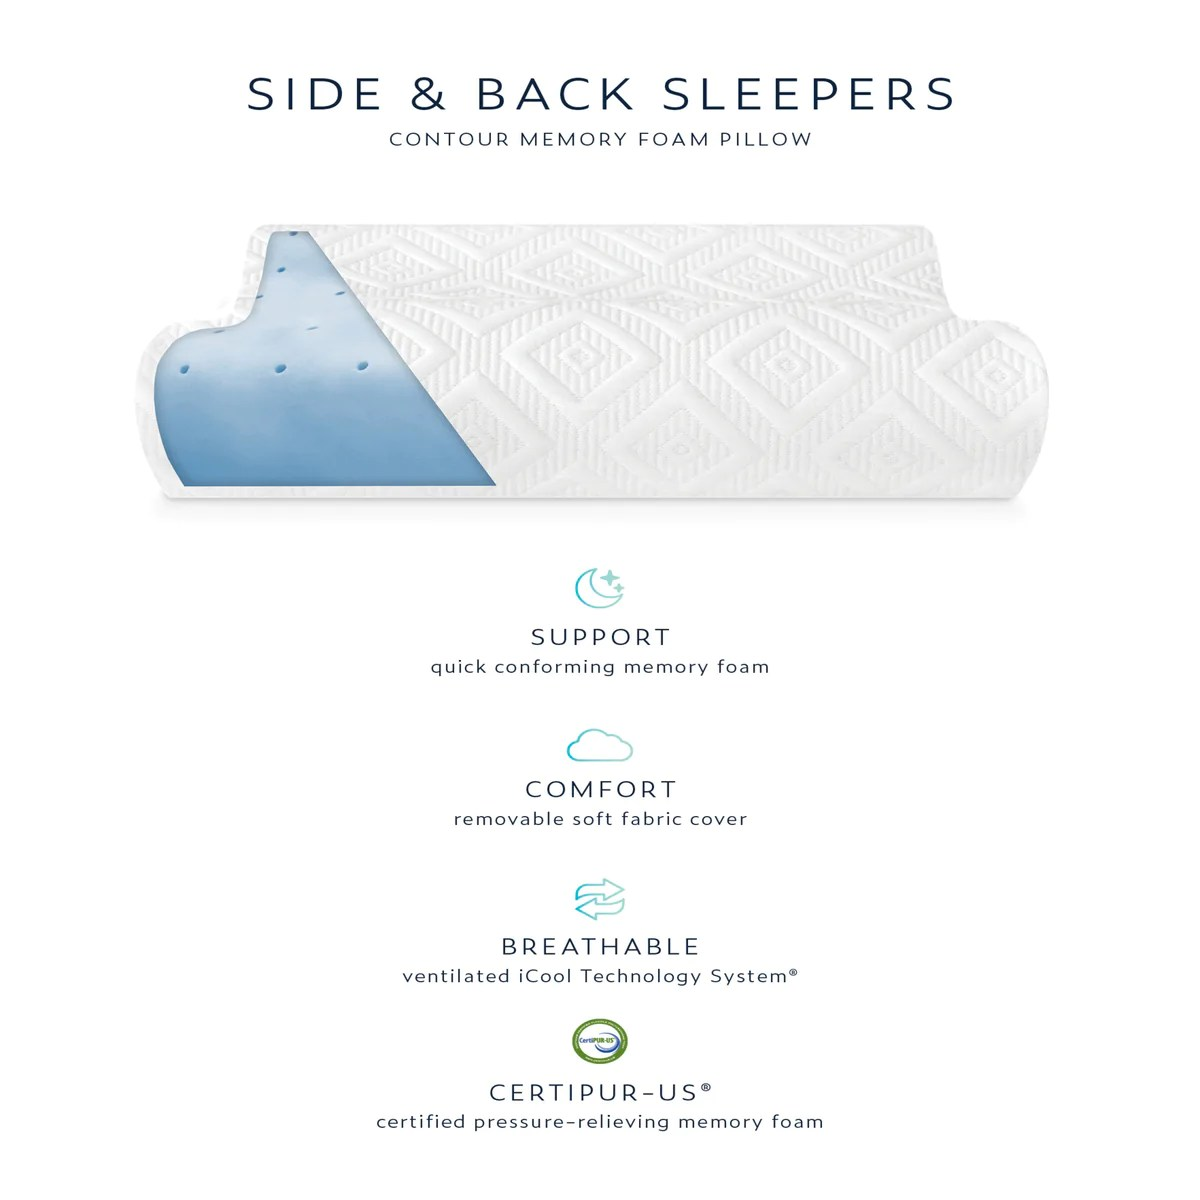 solutions collection contour memory foam pillow for side and back slee bedpillows com